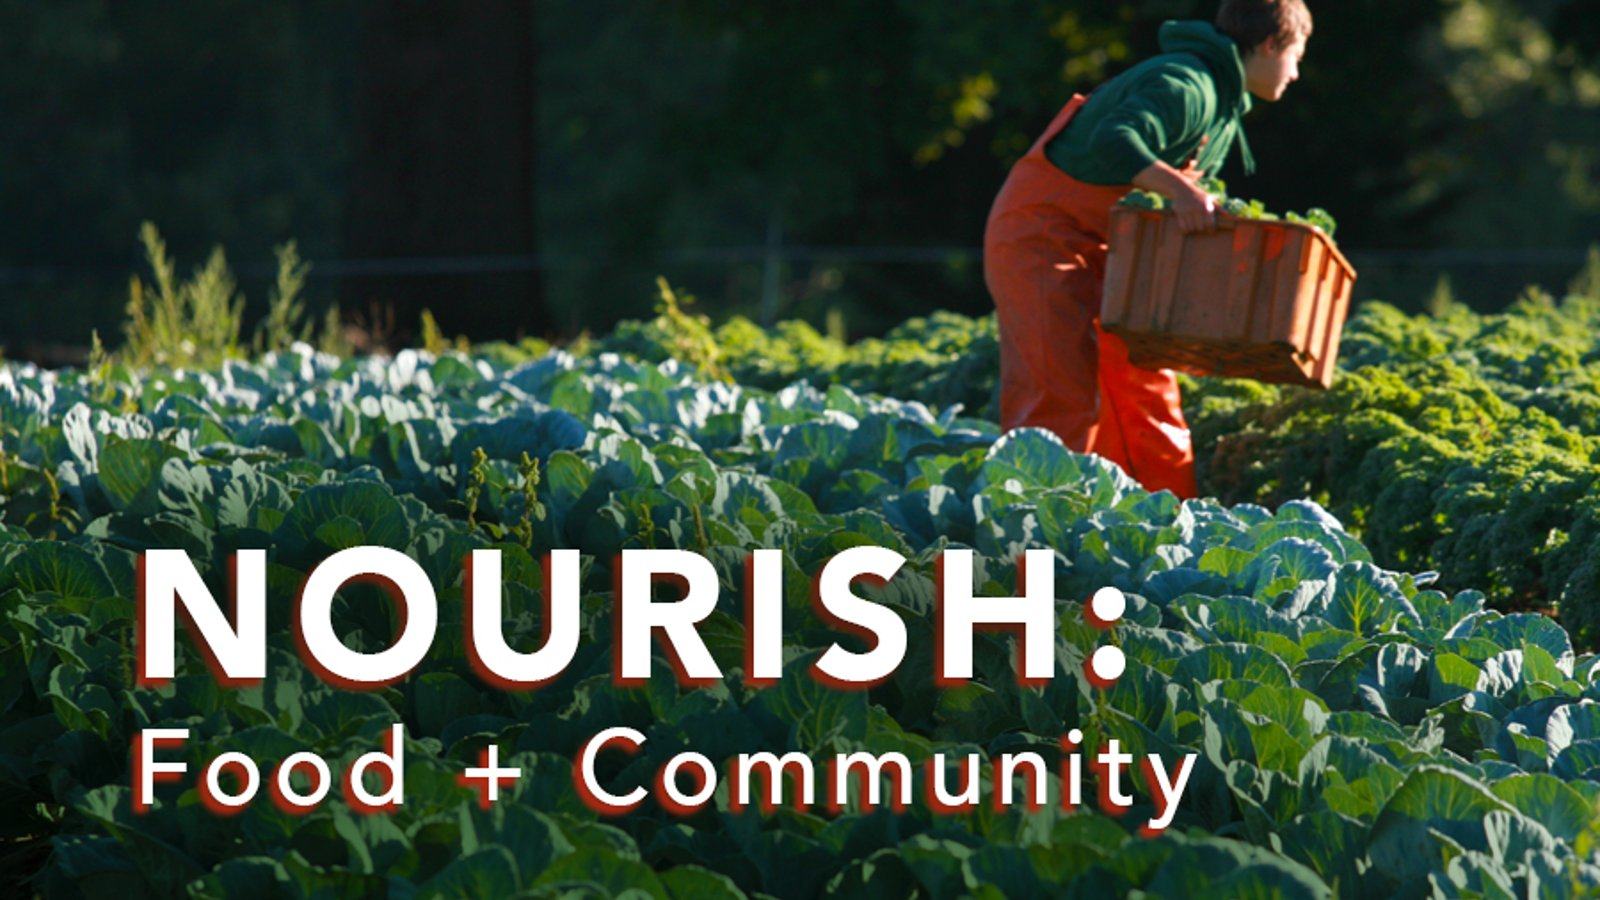 Nourish: Food + Community - Food Choices and the Global Impact